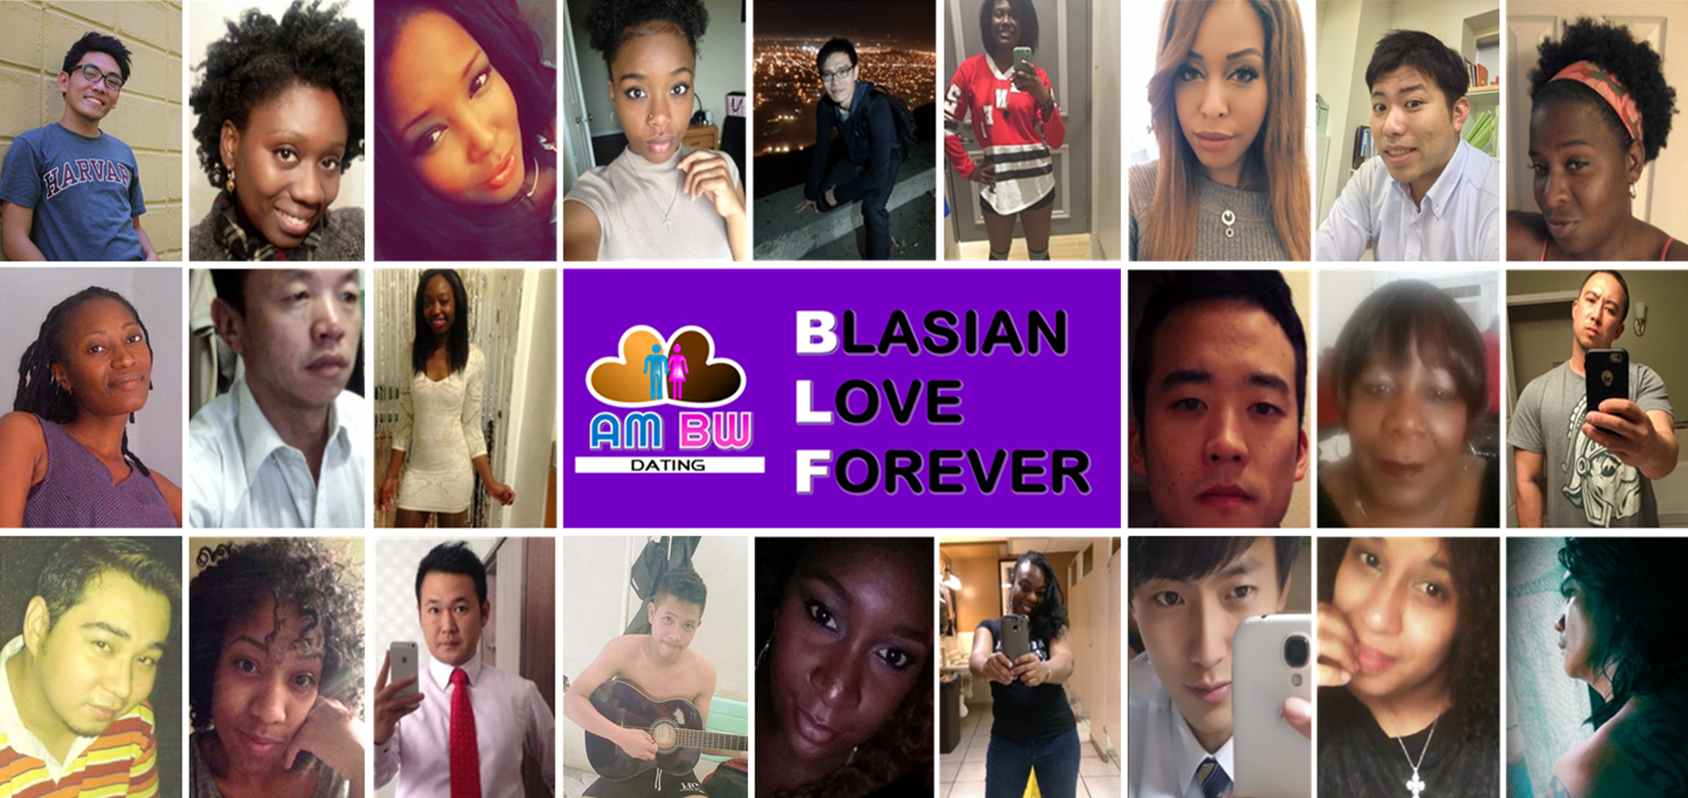 AMBW Dating Site, Asian Men Who Like Black Women, Black Women Who Like Asian Men, Black Women Asian Men, Black Women, Asian Men, AMBW, BWAM, Asian Men Black Women Dating, Black Women Asian Men Dating, Black Women Dating Asian Men, Asian Men Dating Black Women, Interracial, Relationship Goals, Blasian, Asian Persuasian, Date Asian Guys, Date Black Girls, Love Has No Color, AMBW dating, AMBW Dating Website, BWAM dating, AMBW love, BWAM love, Blasian Love, Asian and Black, Black and Asian, Date Asian Men, Black Women, Interracial Dating, Black Girl Asian Guy, Black Women Asian Men, Swirl, Swirl Life, Interracial Love